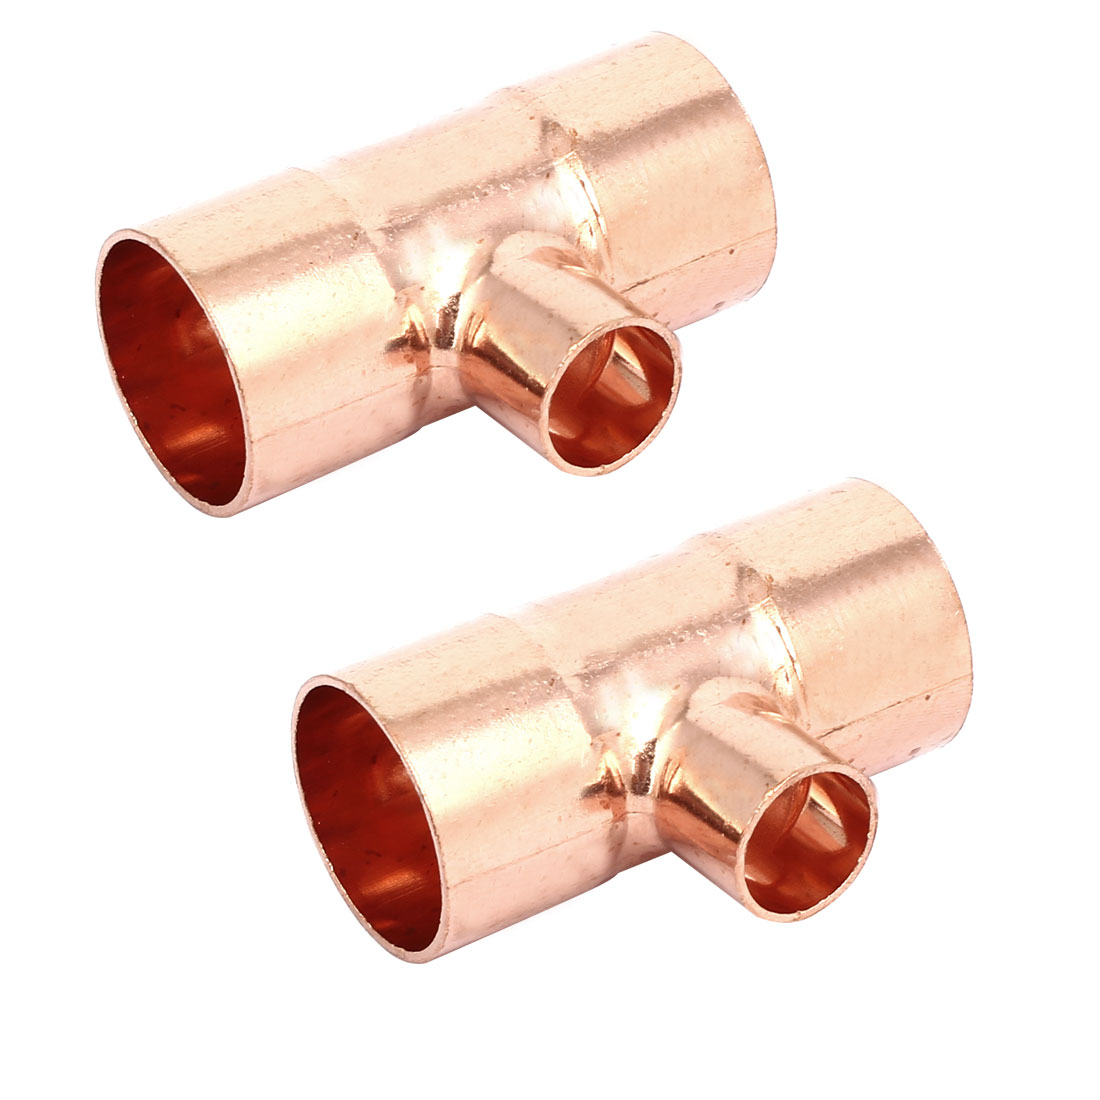 25mmx16mm Copper Tee Reducing Fitting Air Conditioner Plumbing Accessory 2pcs